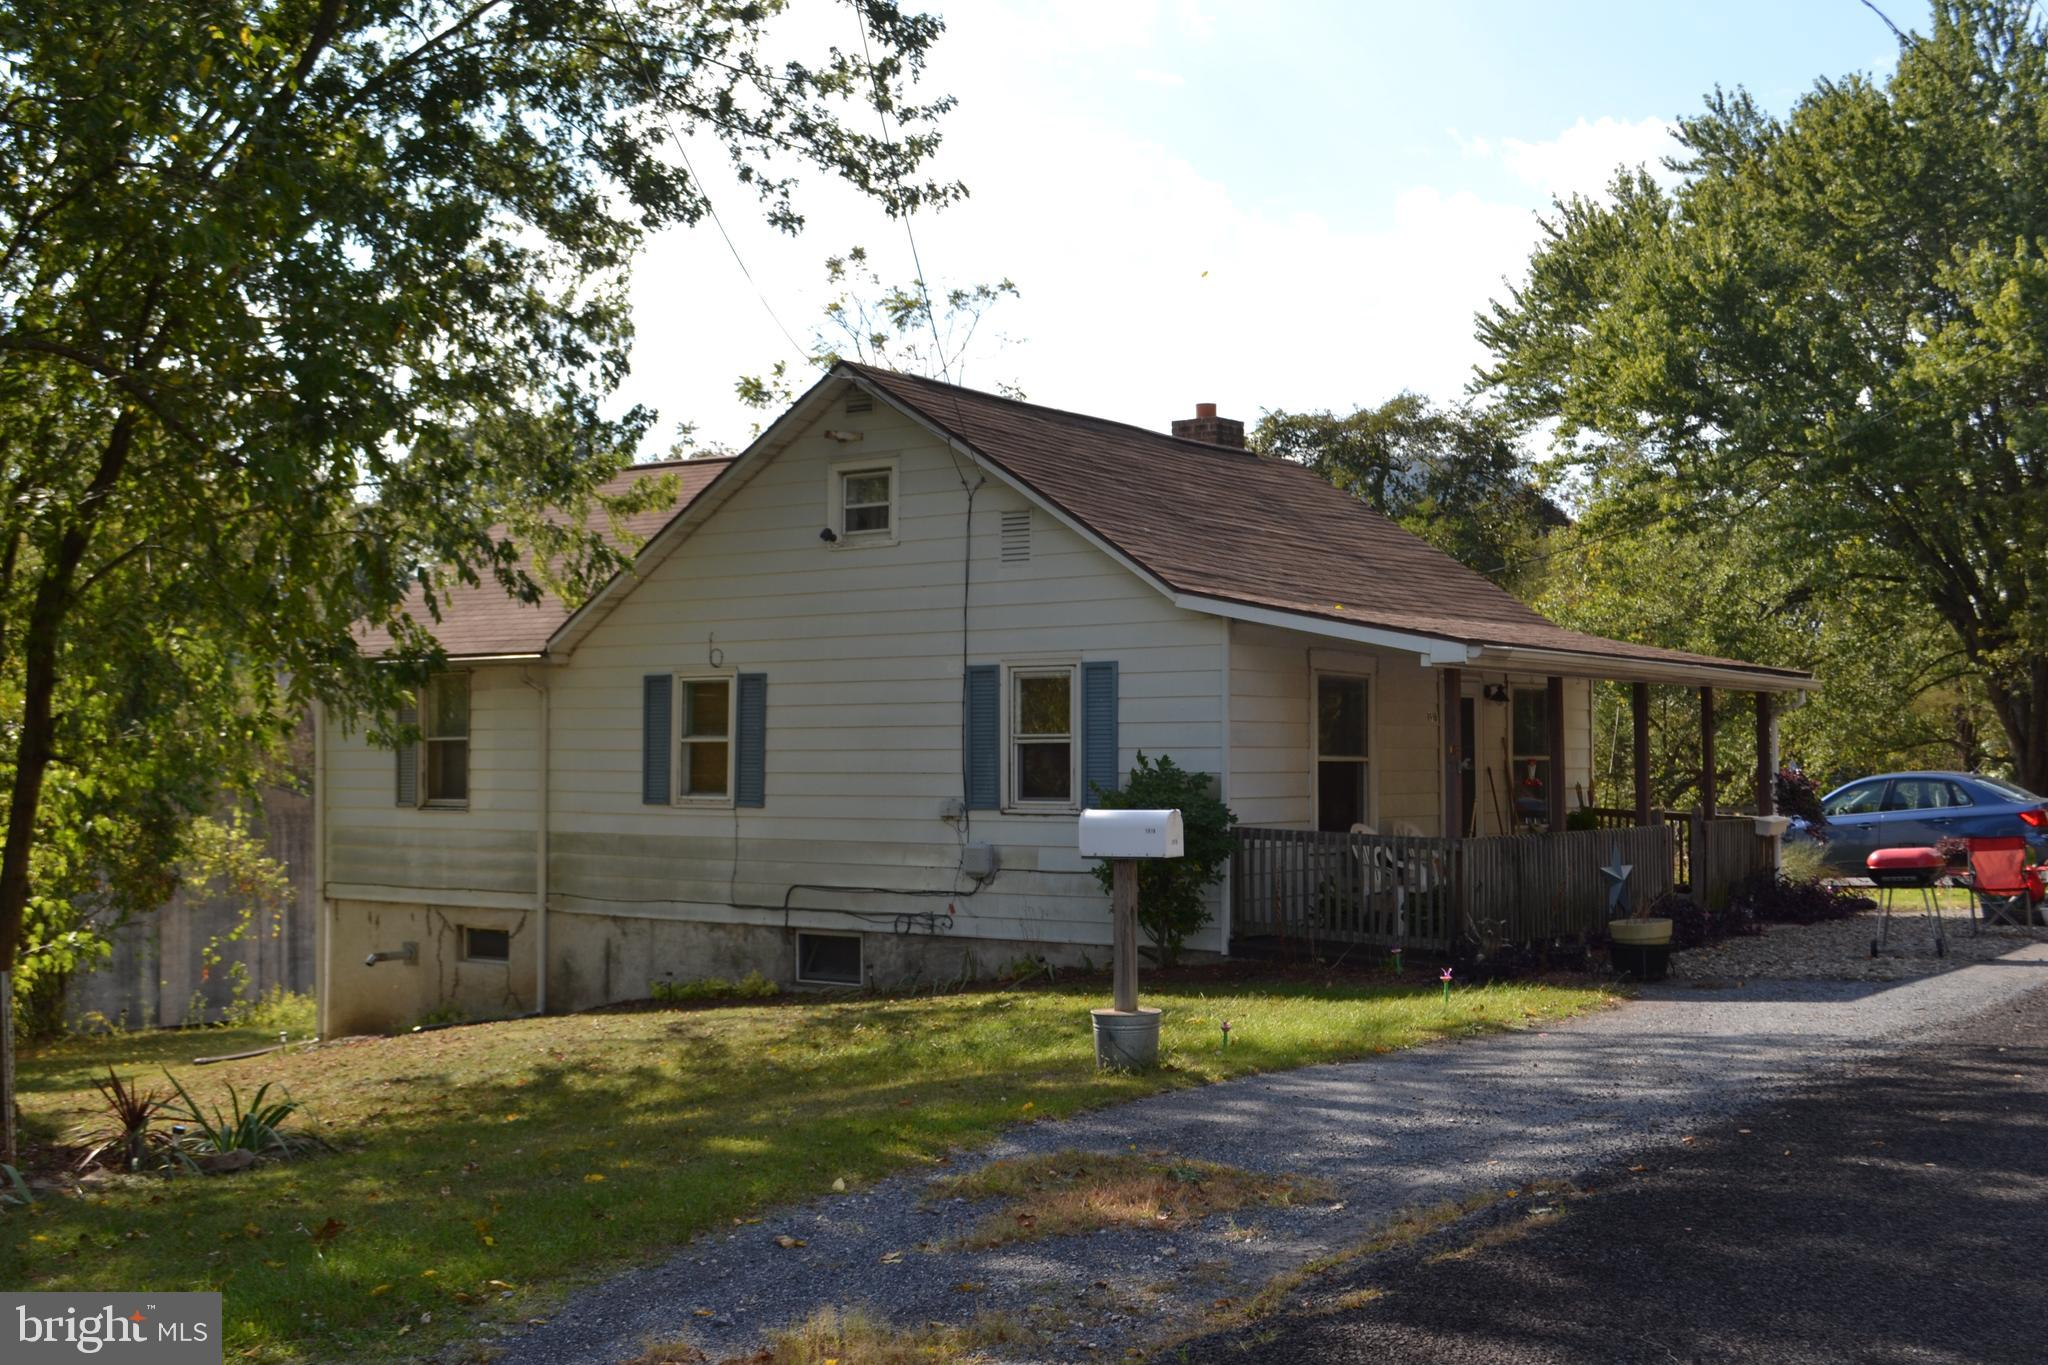 1916 OLD STATE ROAD, DAUPHIN, PA 17018